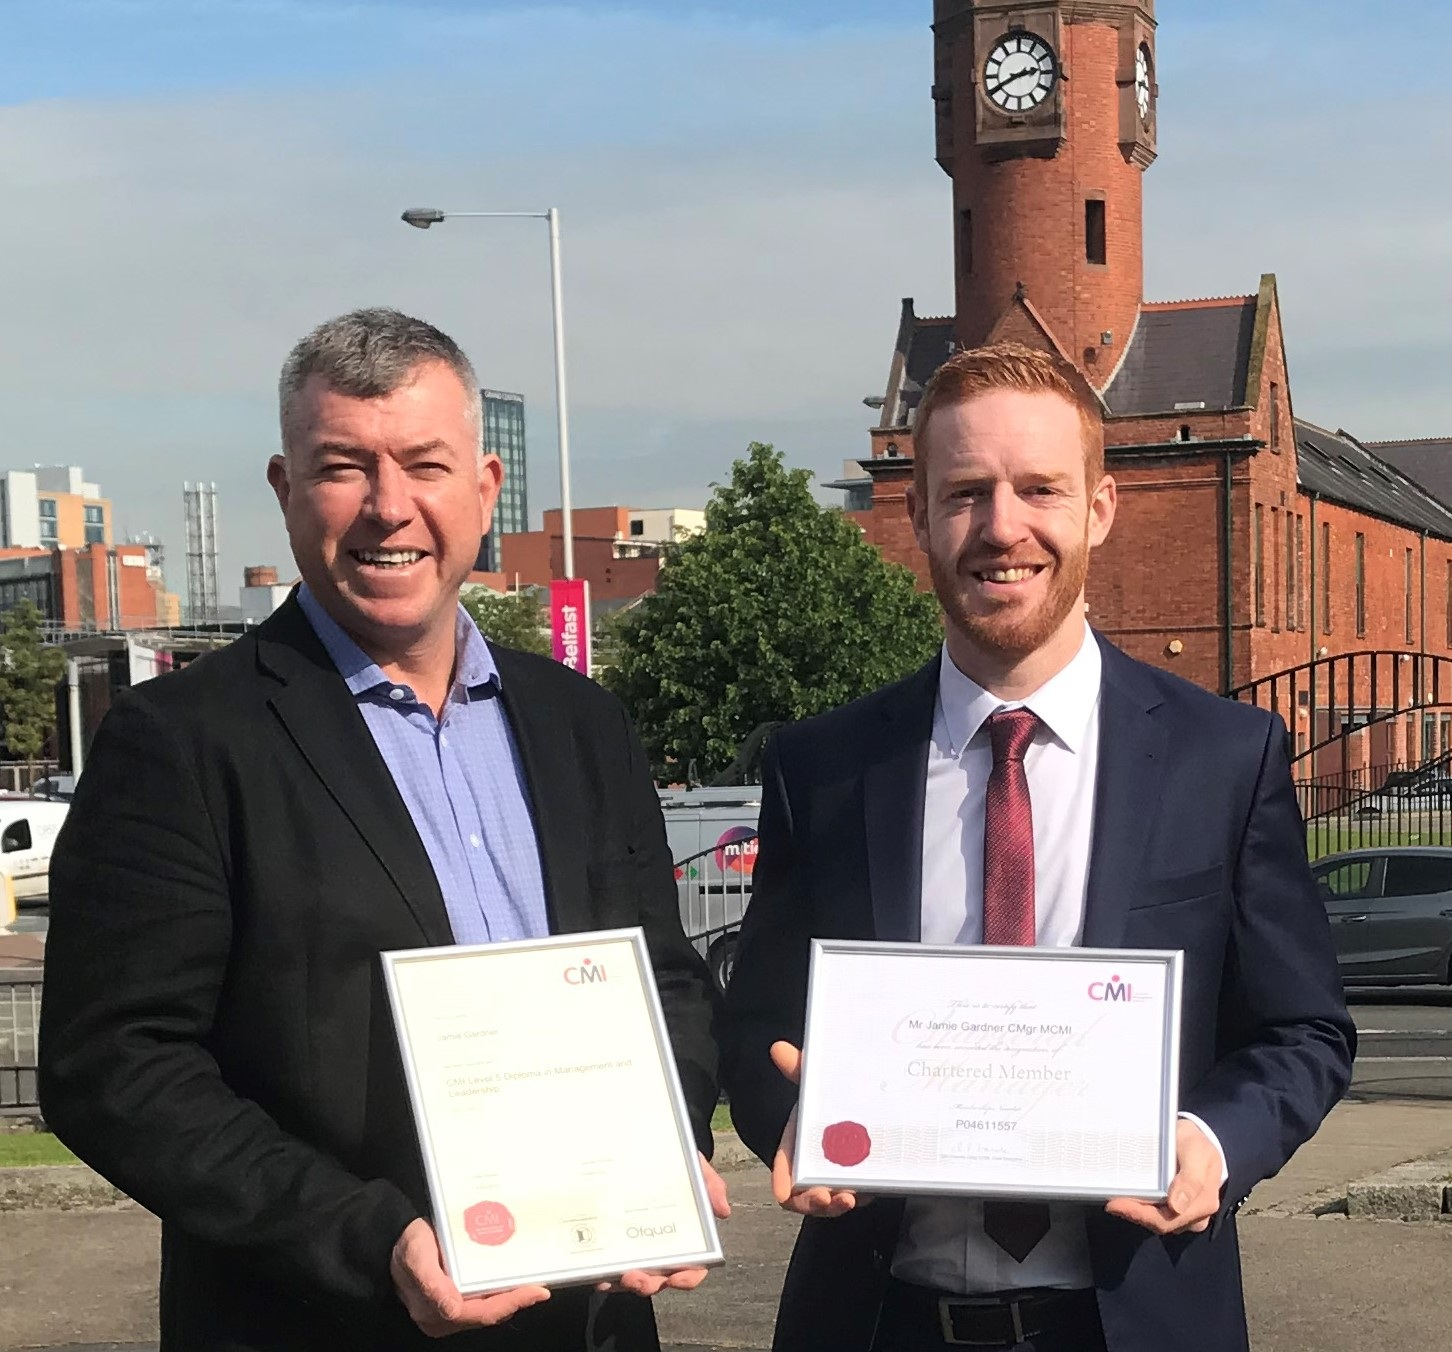 Martin Rice (CEO Next Level Impact) presents Jamie Gardner (Commercial Manager, Ratio Vending) with his Level 5 Diploma in Management and Leadership. Jamie is also the first employee in Ratio Vending's 50 year history to be recognised as a Chartered Manager.